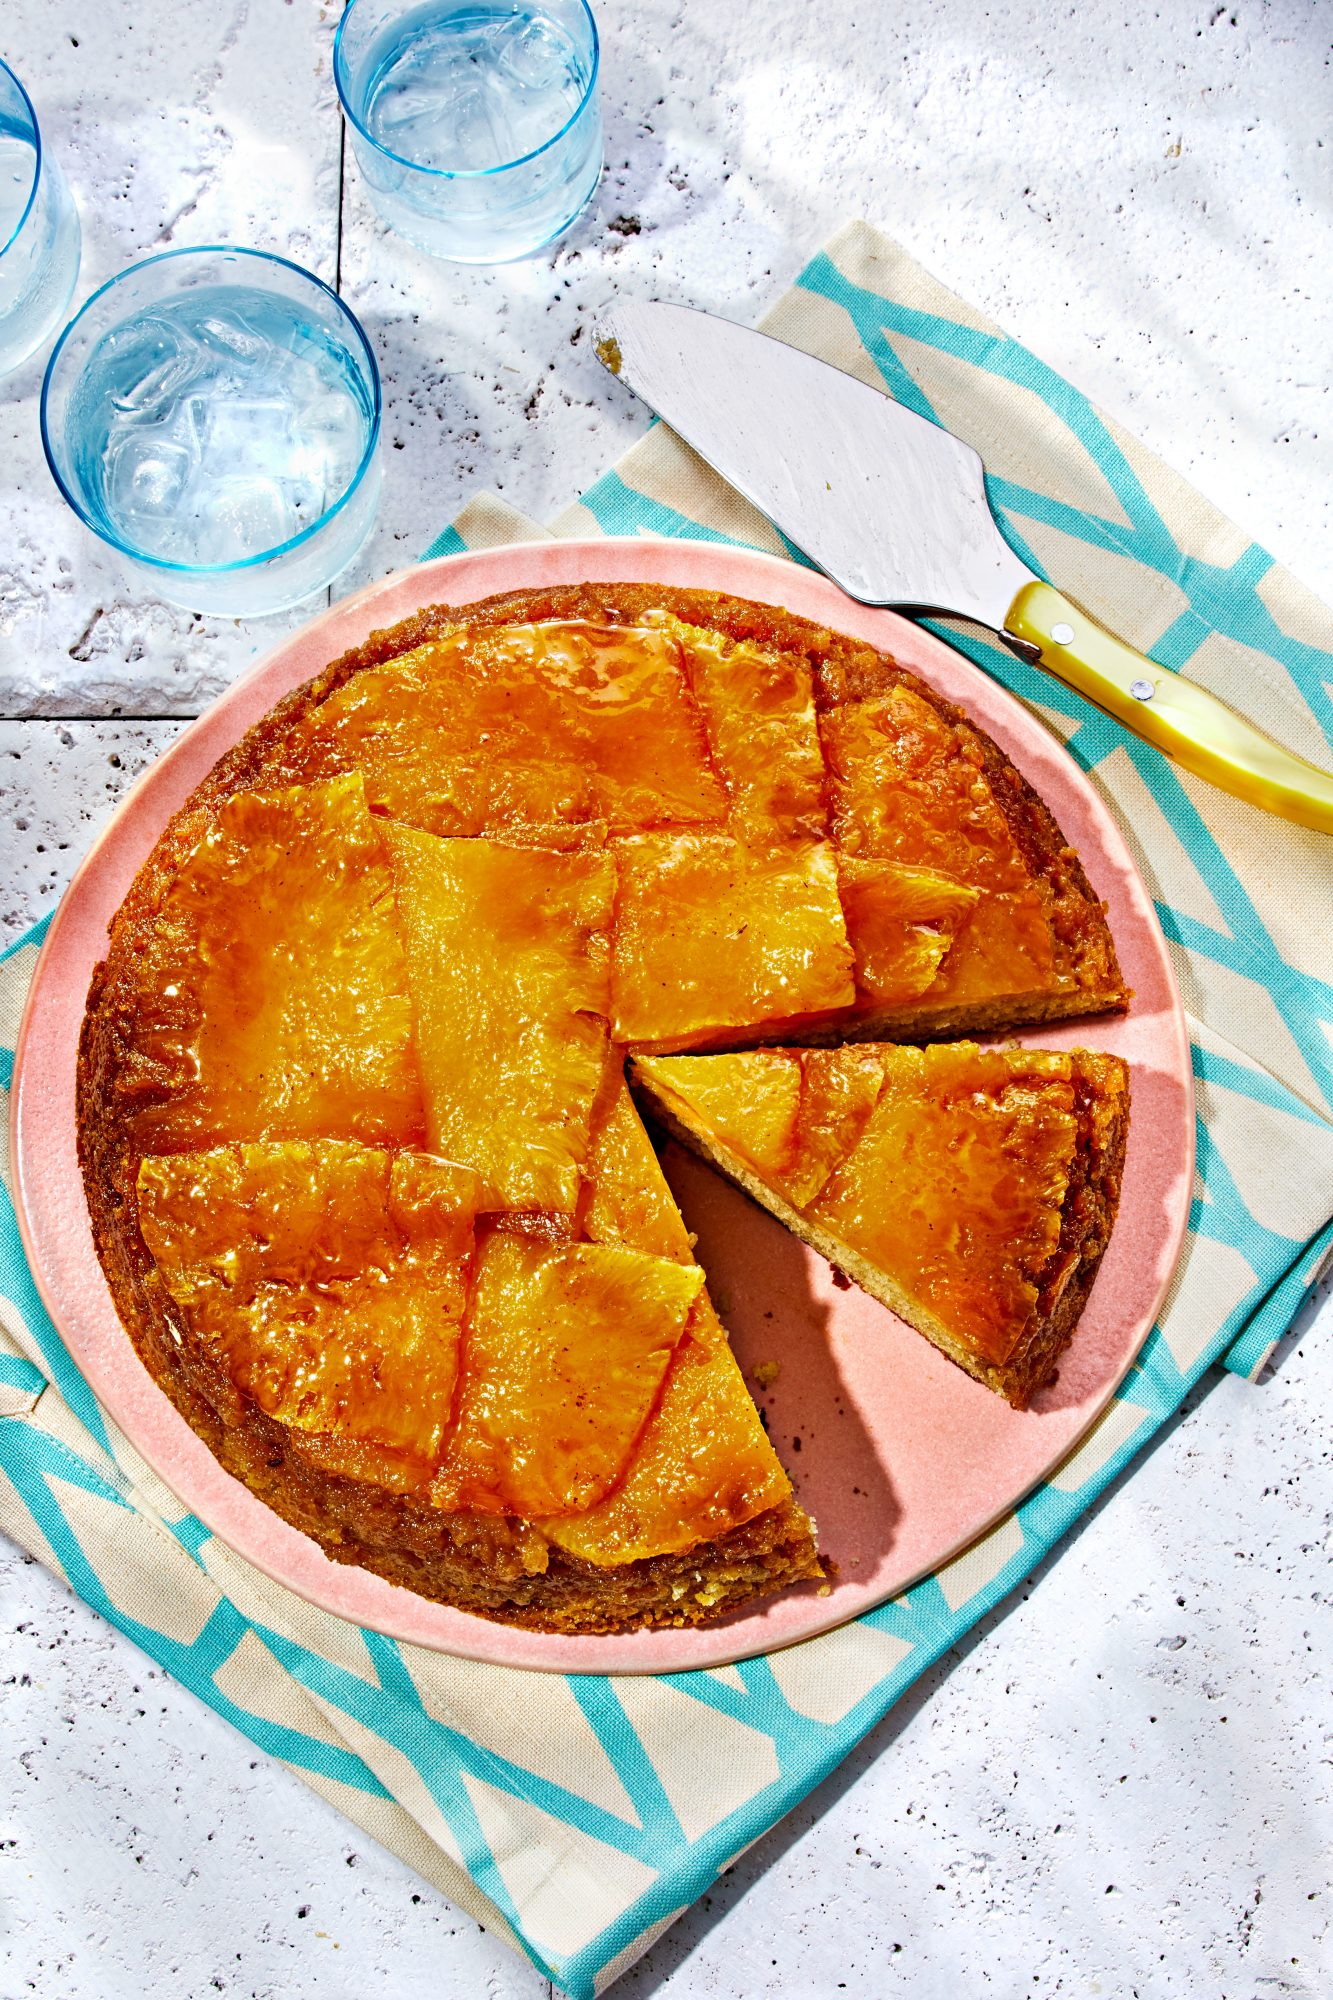 Pineapple-Ginger Upside-Down Cake